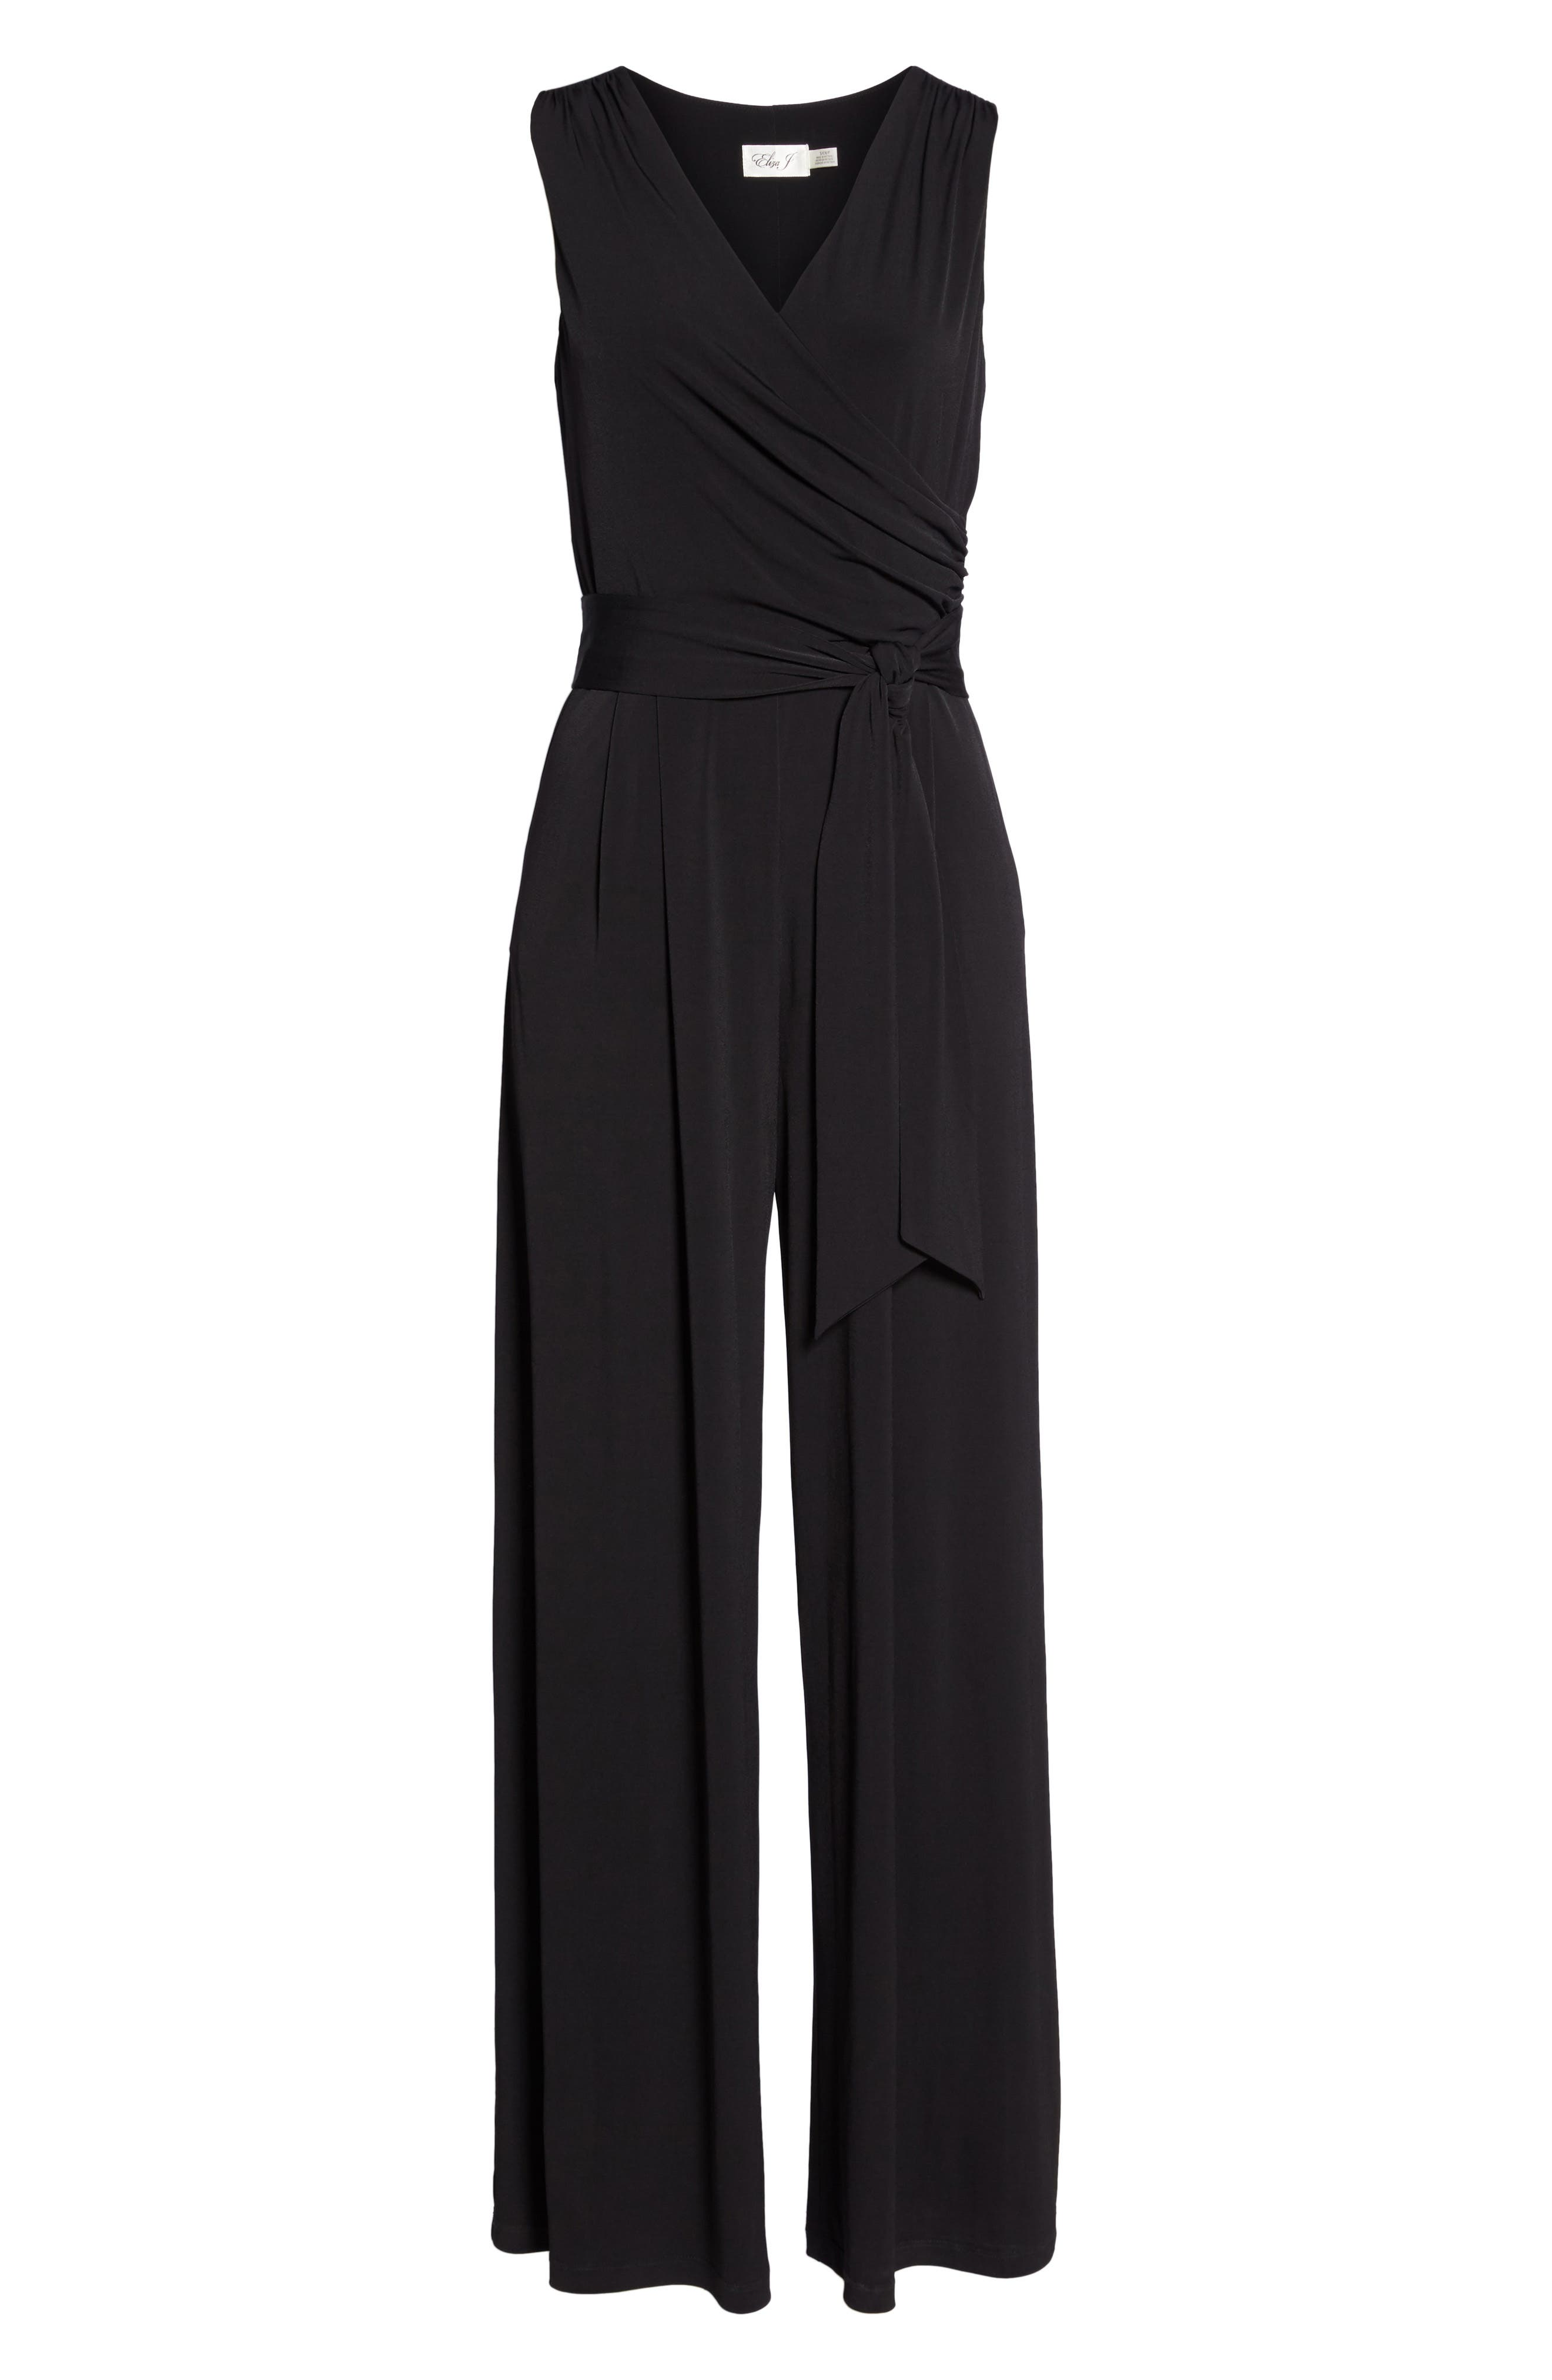 ELIZA J, Faux Wrap Wide Leg Jumpsuit, Alternate thumbnail 7, color, BLACK